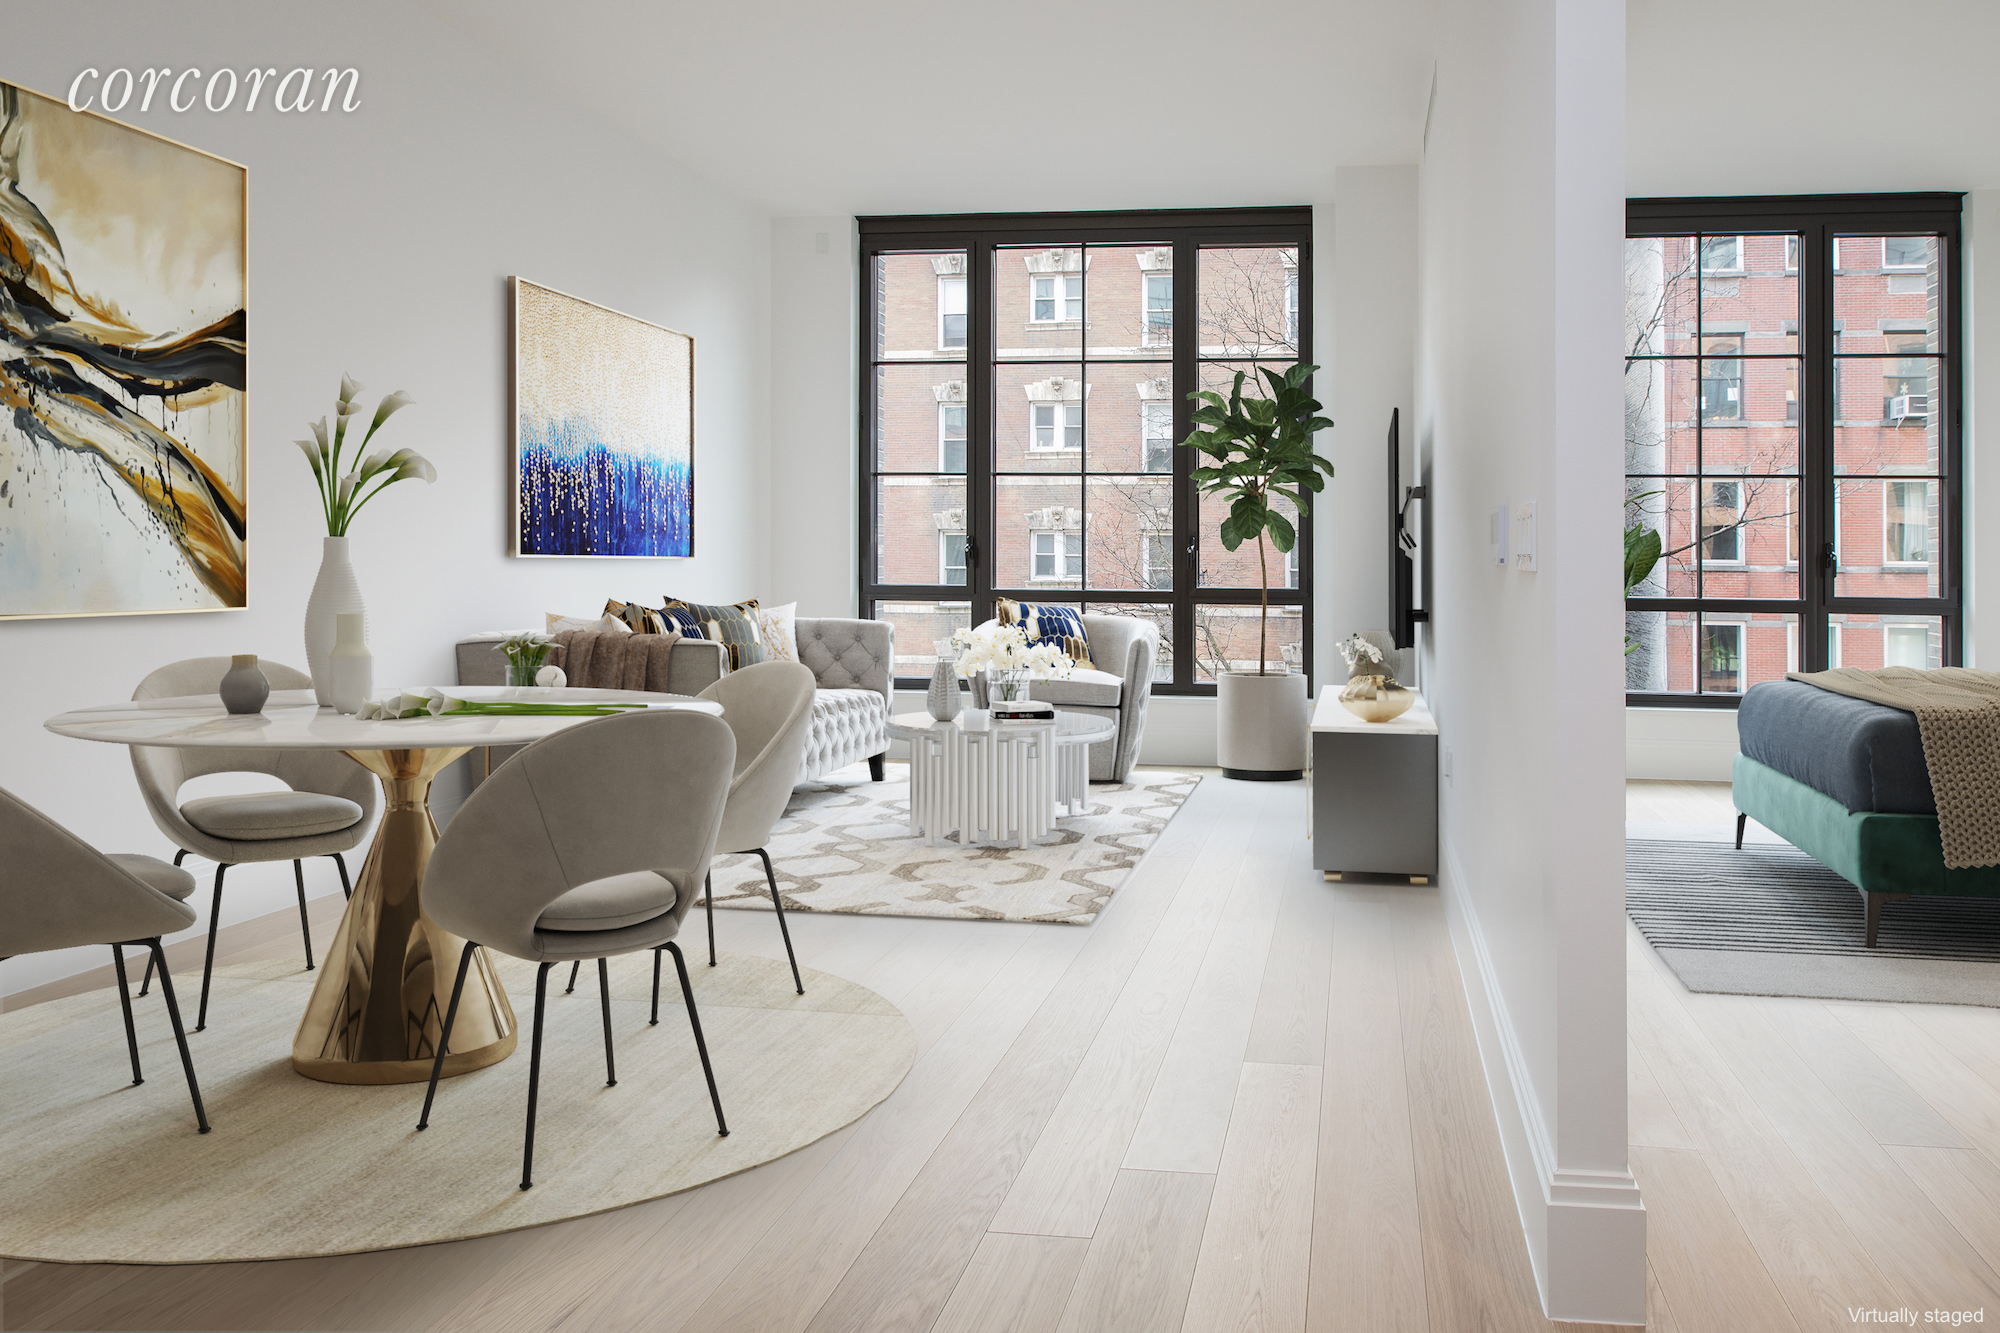 "Video tour: https://youtu.be/tRlE4xak4DEBeautiful Sunny 1BR with Southern Exposure, 10'7"" High Ceiling combined with Floor to Ceiling windows brings in tons of light and lovely East Village street view. Designed by famous designer Paris Forino, this luxury apt comes with Top of the Line Appliance including a Wine cooler, beautiful Hardwood floor and used a lot of marble with great design and details, also has a very practical layout. Steiner is the newest building in East Village which comes with over 16,000 SF of Amazing amenities which includes 24 hr Concierge, Library, Gym, 50 ft Pool overlooking the Courtyard, Sauna and Steam room, Playroom, Courtyard next to the pool and Rooftop Garden with BBQ Grill. Convenient location with easy access to transportation, supermarket and restaurants  in the neighborhood. This is a great opportunity to own your new home in this amazing building.Please note that photos were taken before tenant moved in, currently has tenant in place so need advanced notice."